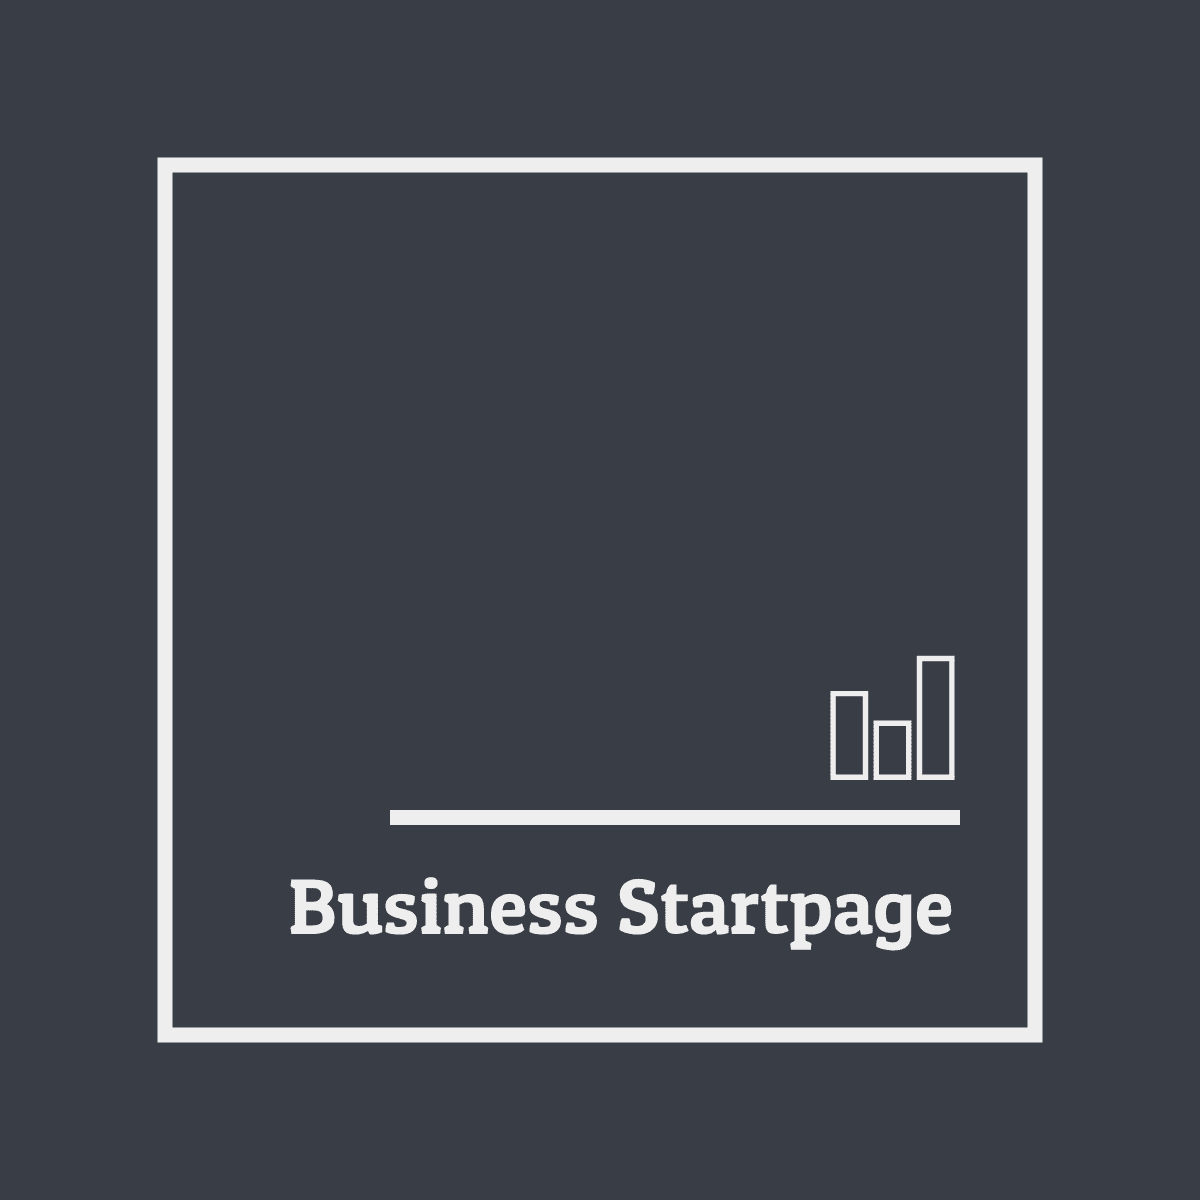 Business-startpage